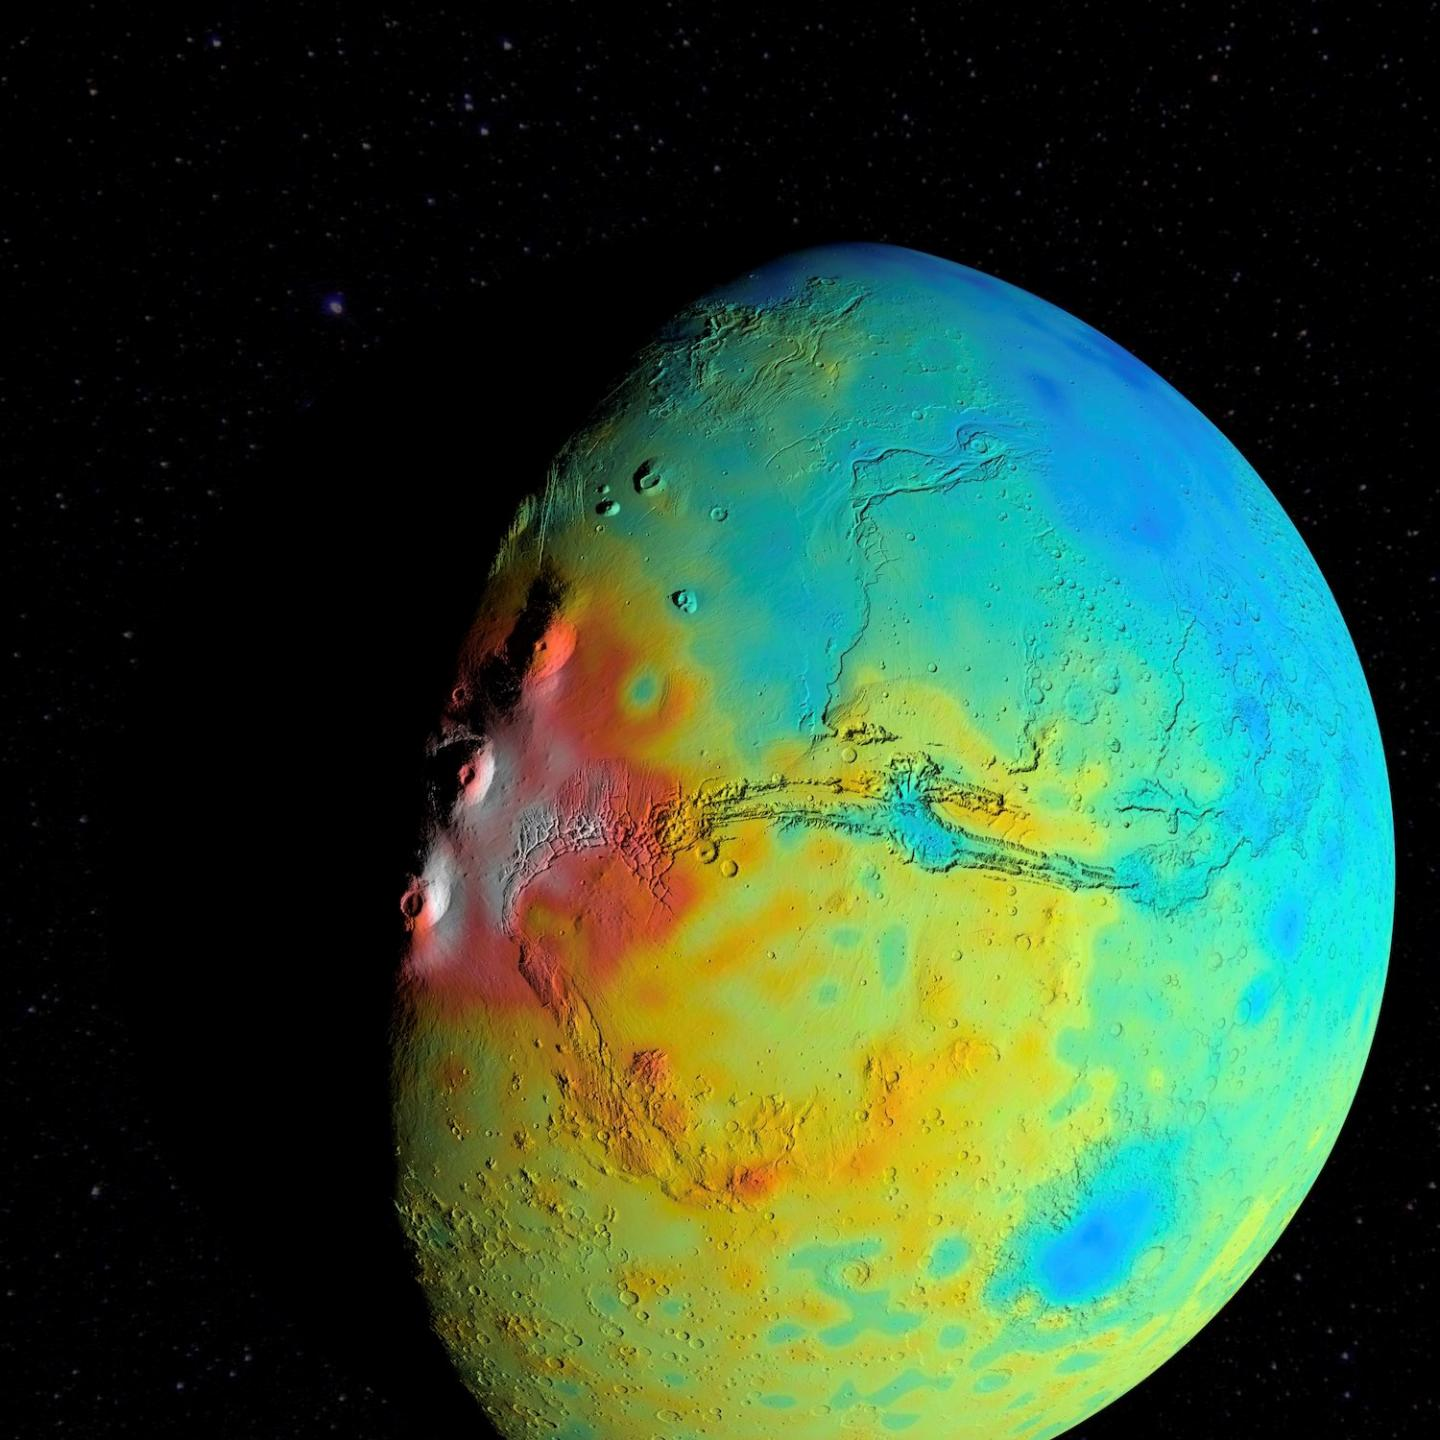 NASA gravity map shows Mars has porous crust